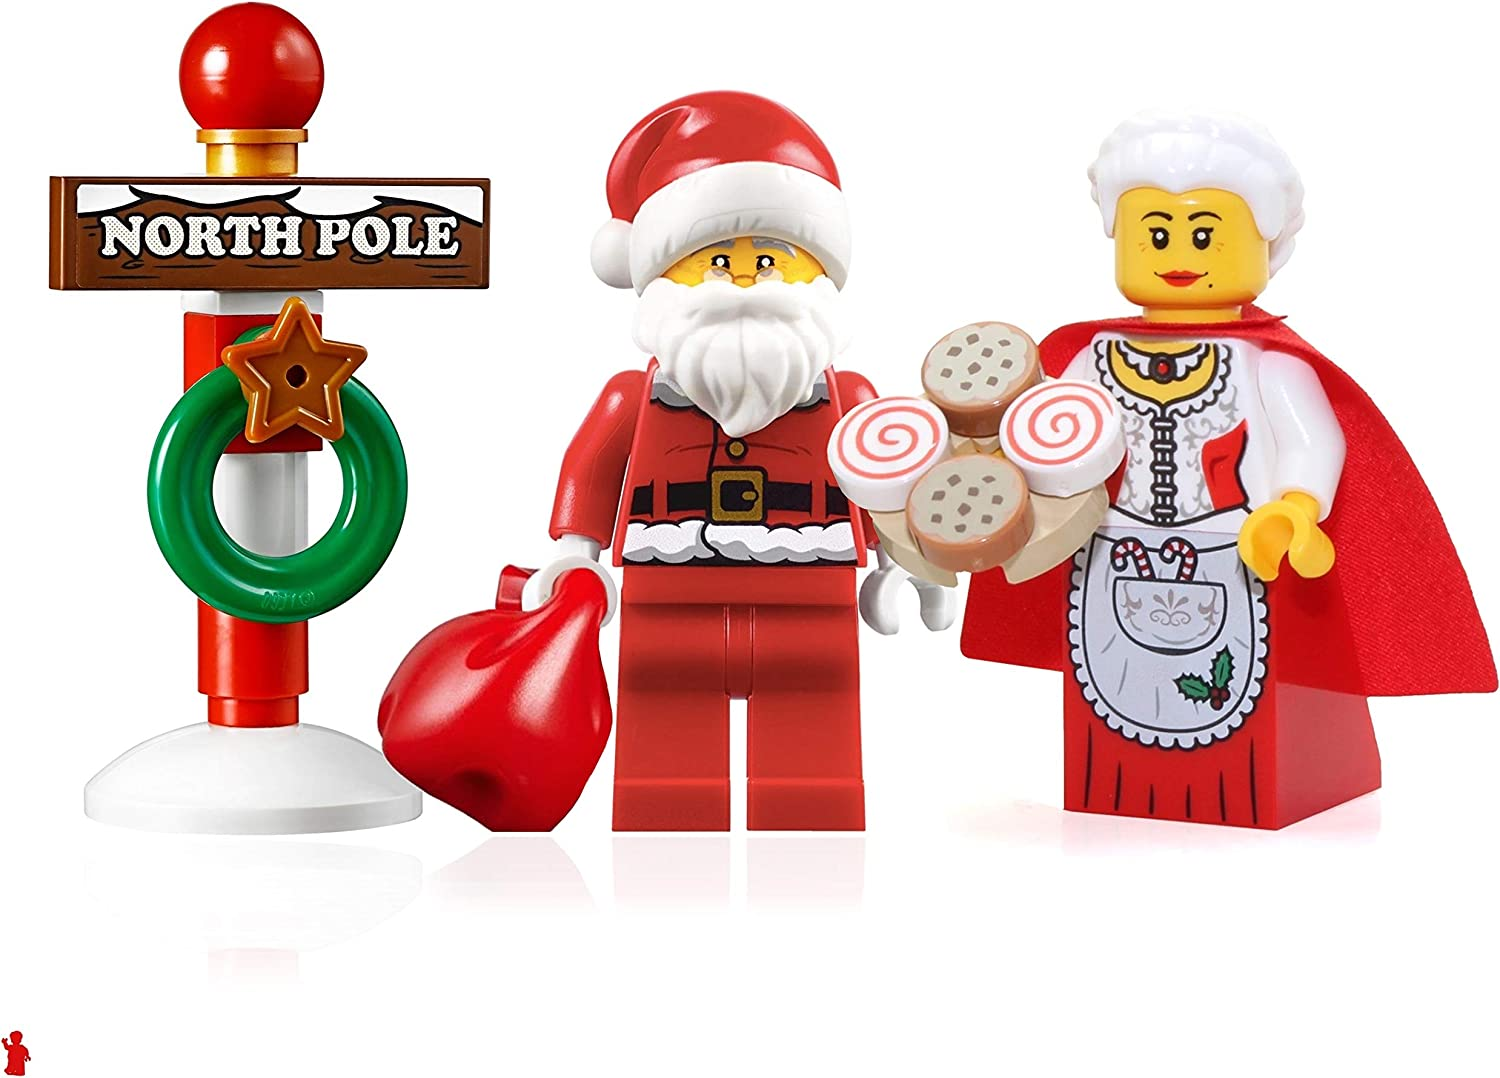 LEGO Holiday Creator Minifigure Set - Santa with Glasses, Mrs. Claus, and North Pole Stand